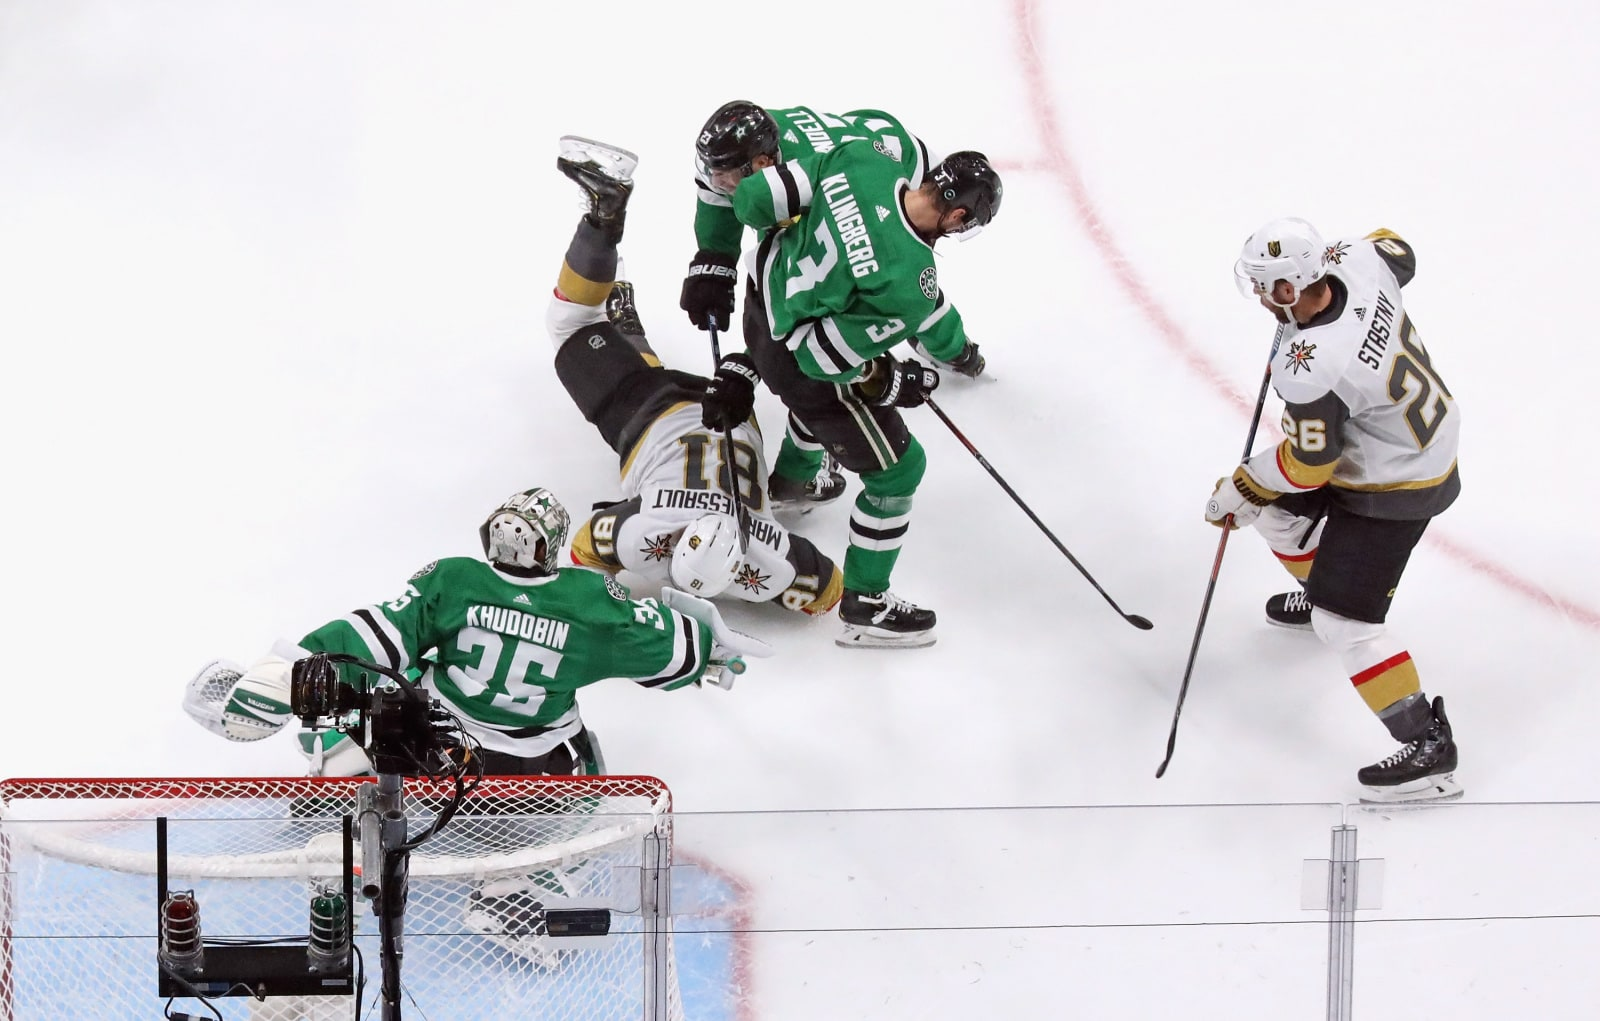 Jonathan Marchessault #81 of the Vegas Golden Knights is tripped up by Esa Lindell #23 of the Dallas Stars in Game Four